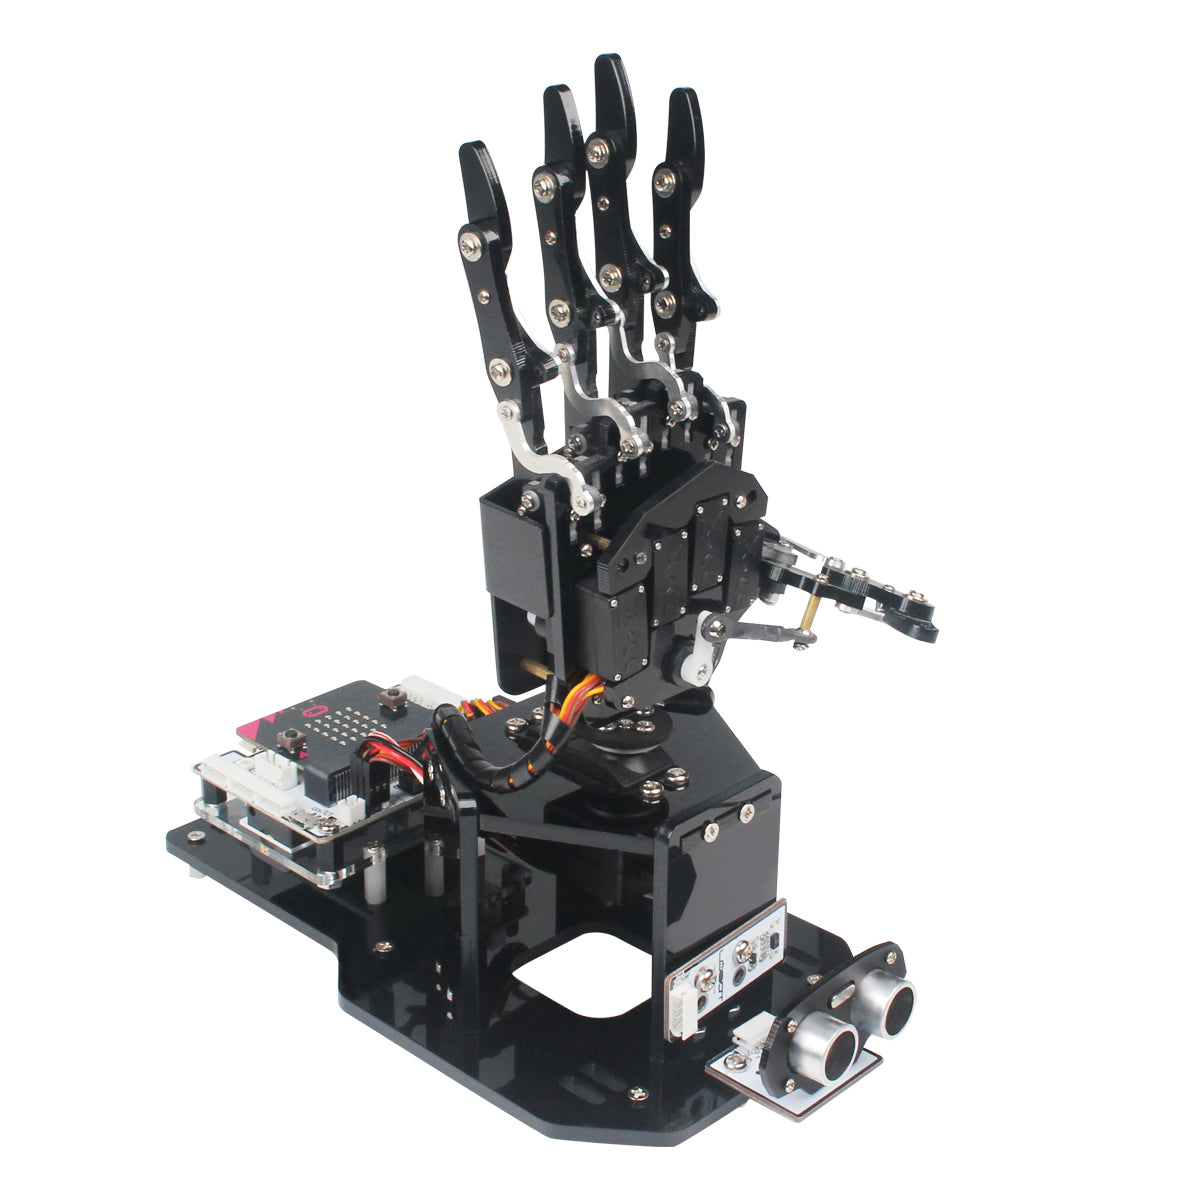 uHandbit: Hiwonder micro:bit Programmable Robotic Hand for AI Learning